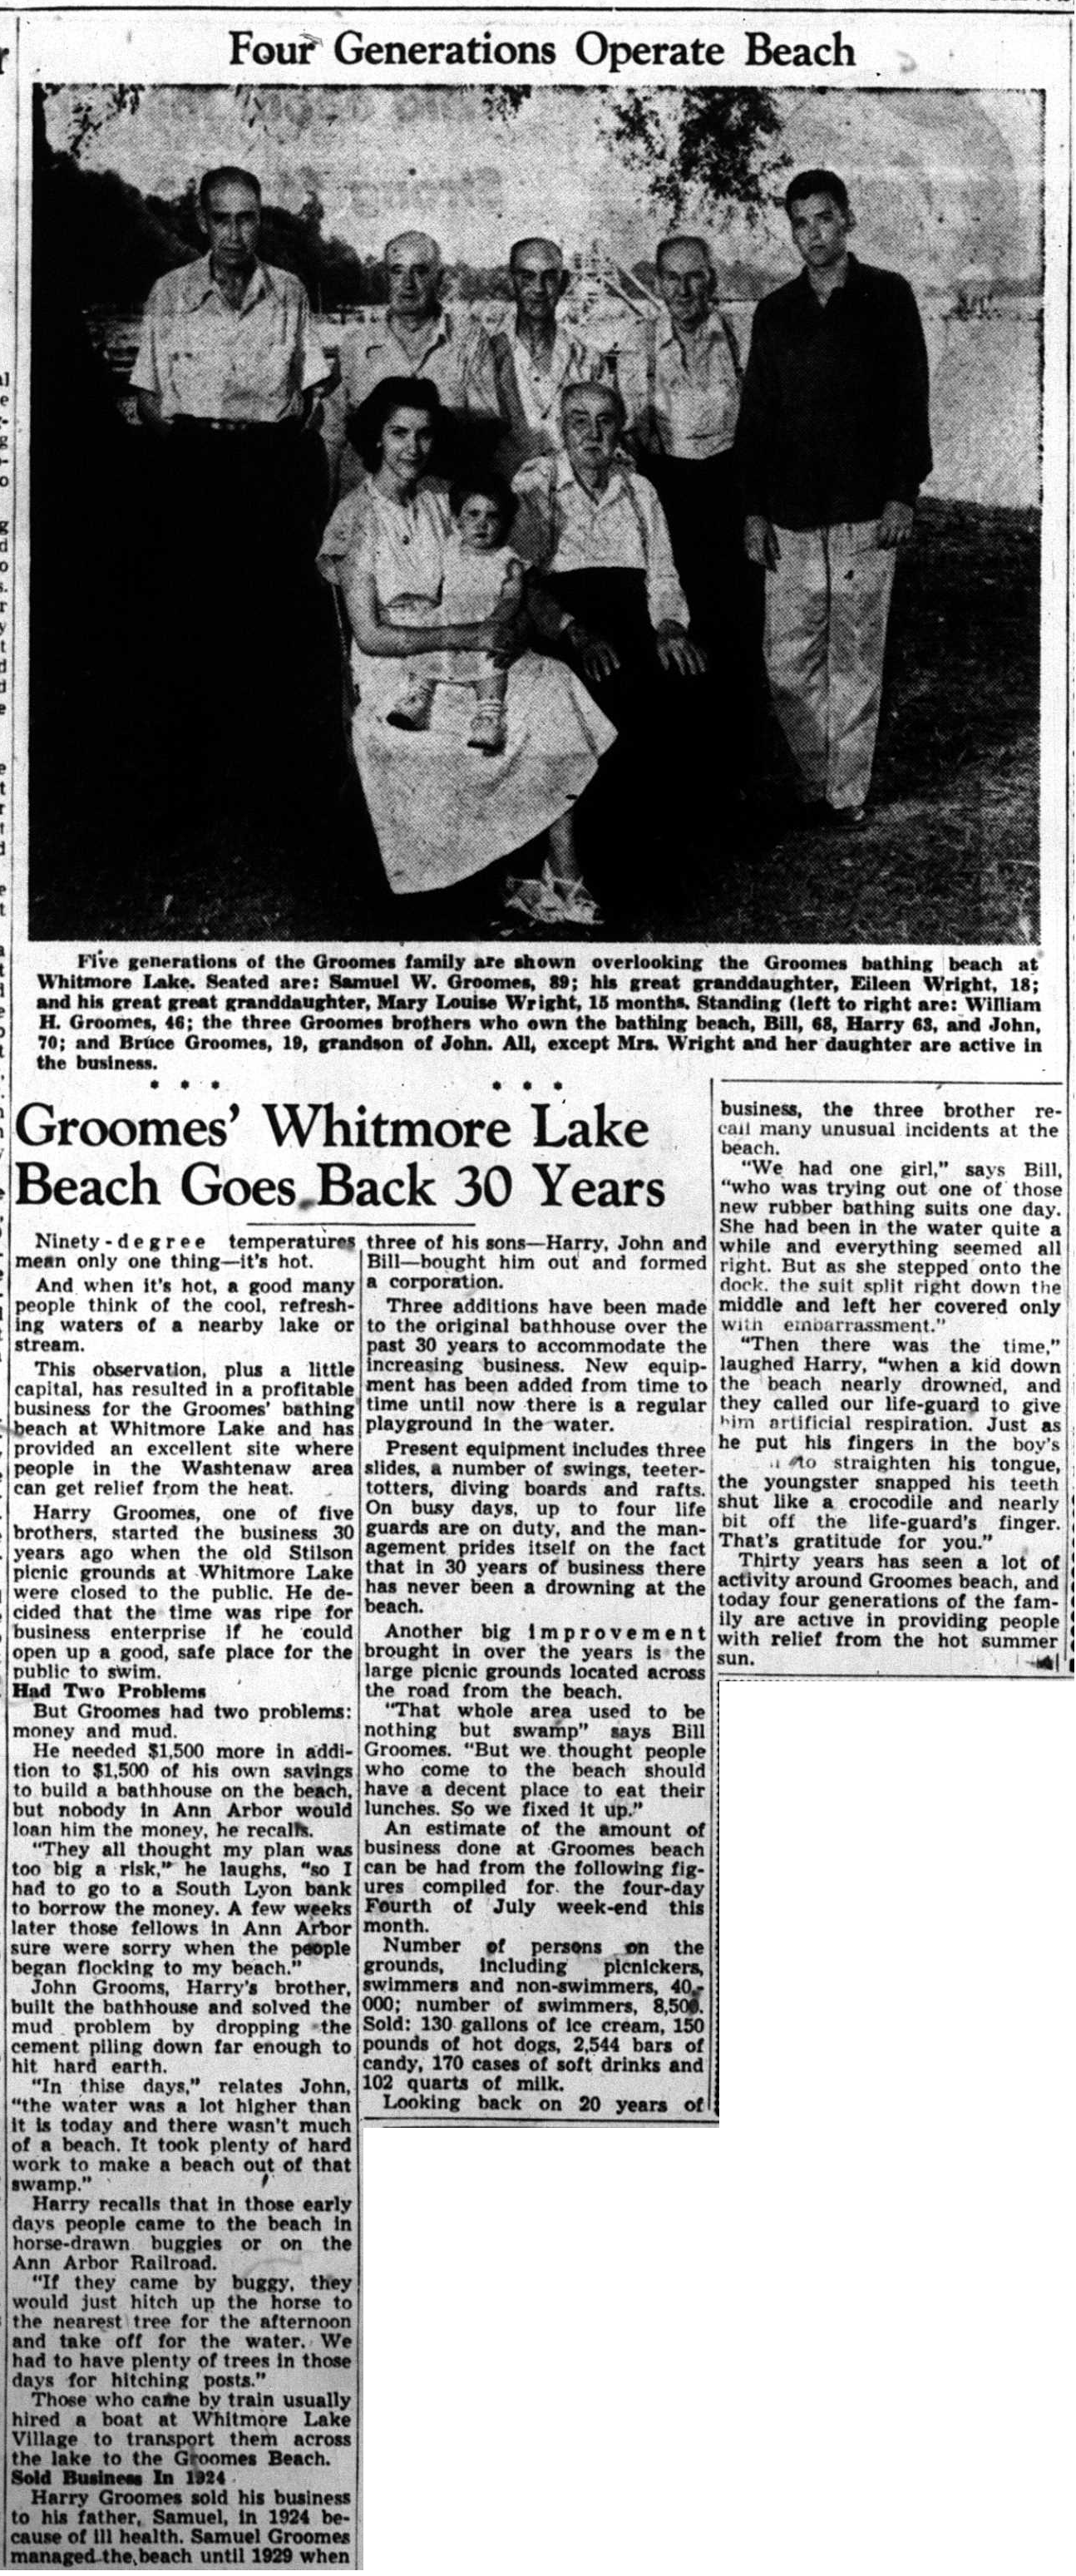 Groomes' Whitmore Lake Beach Goes Back 30 Years image